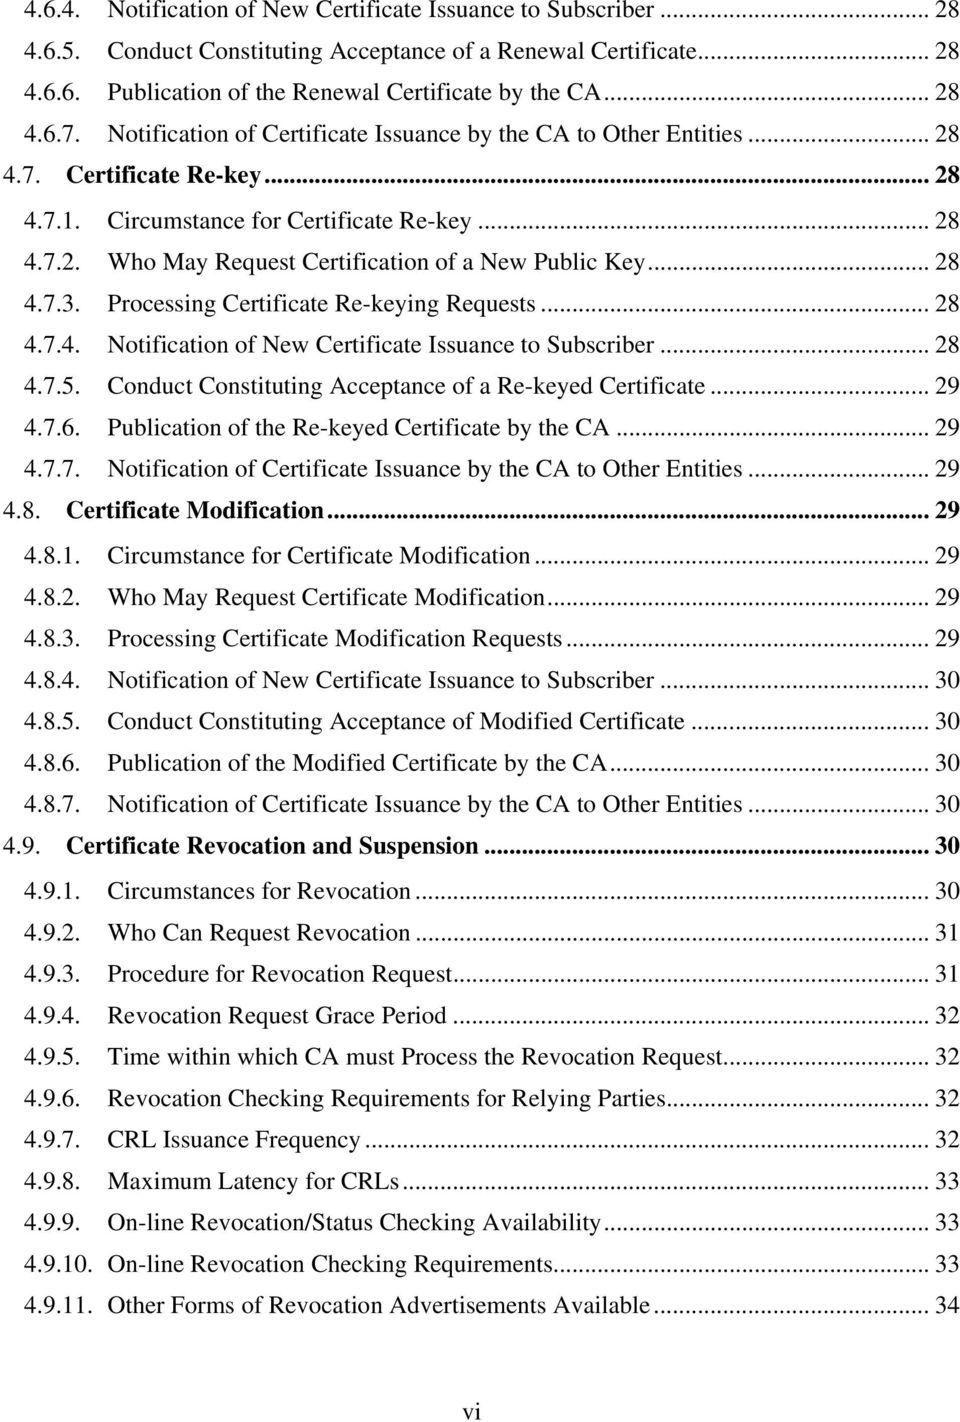 .. 28 4.7.3. Processing Certificate Re-keying Requests... 28 4.7.4. Notification of New Certificate Issuance to Subscriber... 28 4.7.5. Conduct Constituting Acceptance of a Re-keyed Certificate... 29 4.